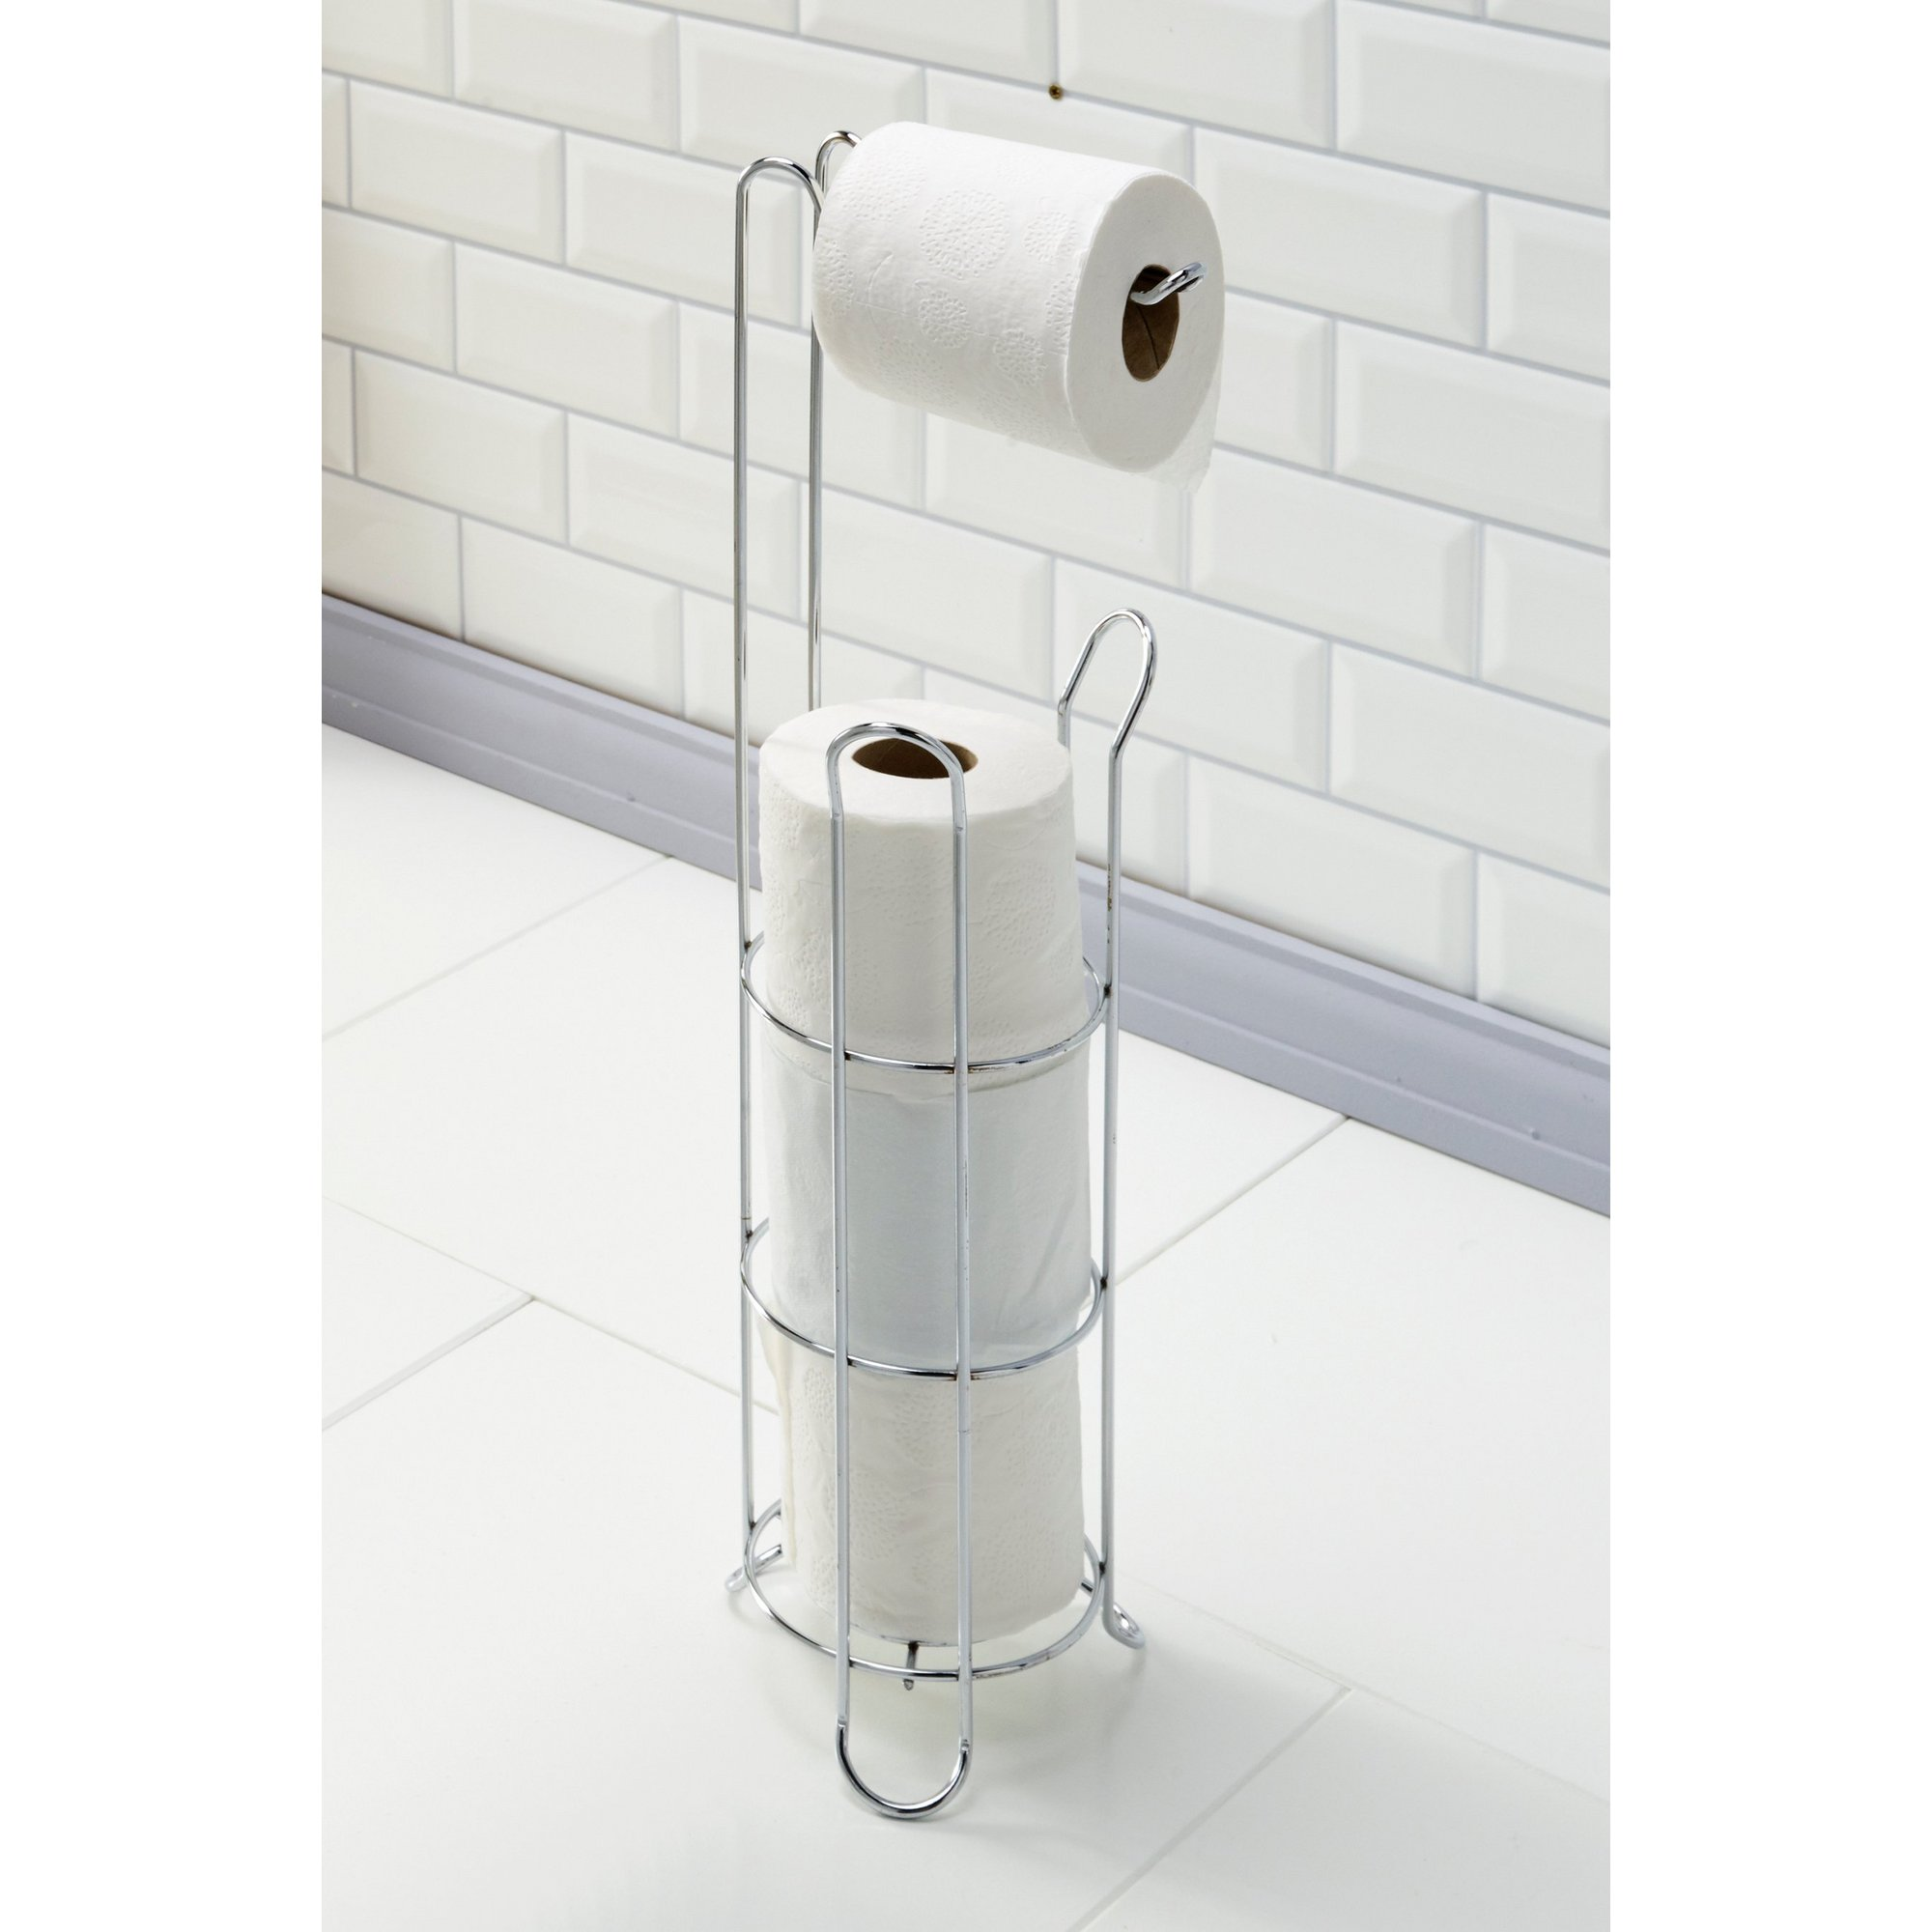 Image of 2 in 1 Toilet Roll Holder